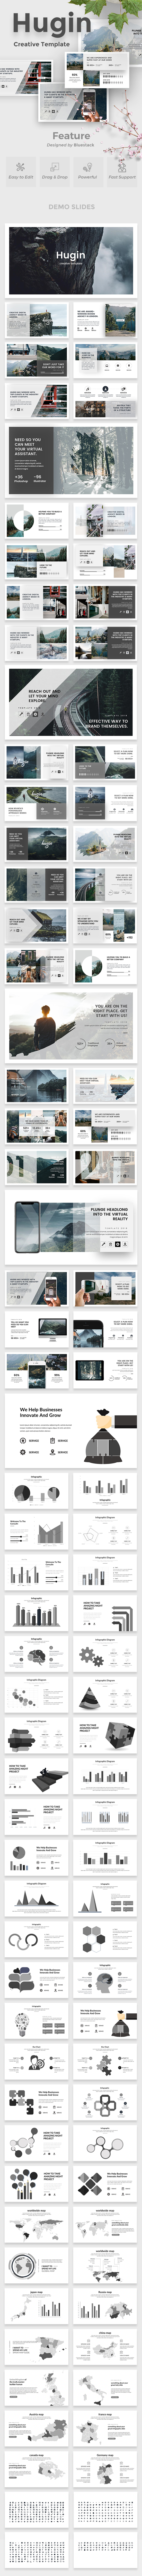 Hugin Creative Powerpoint Template by bluestack | GraphicRiver